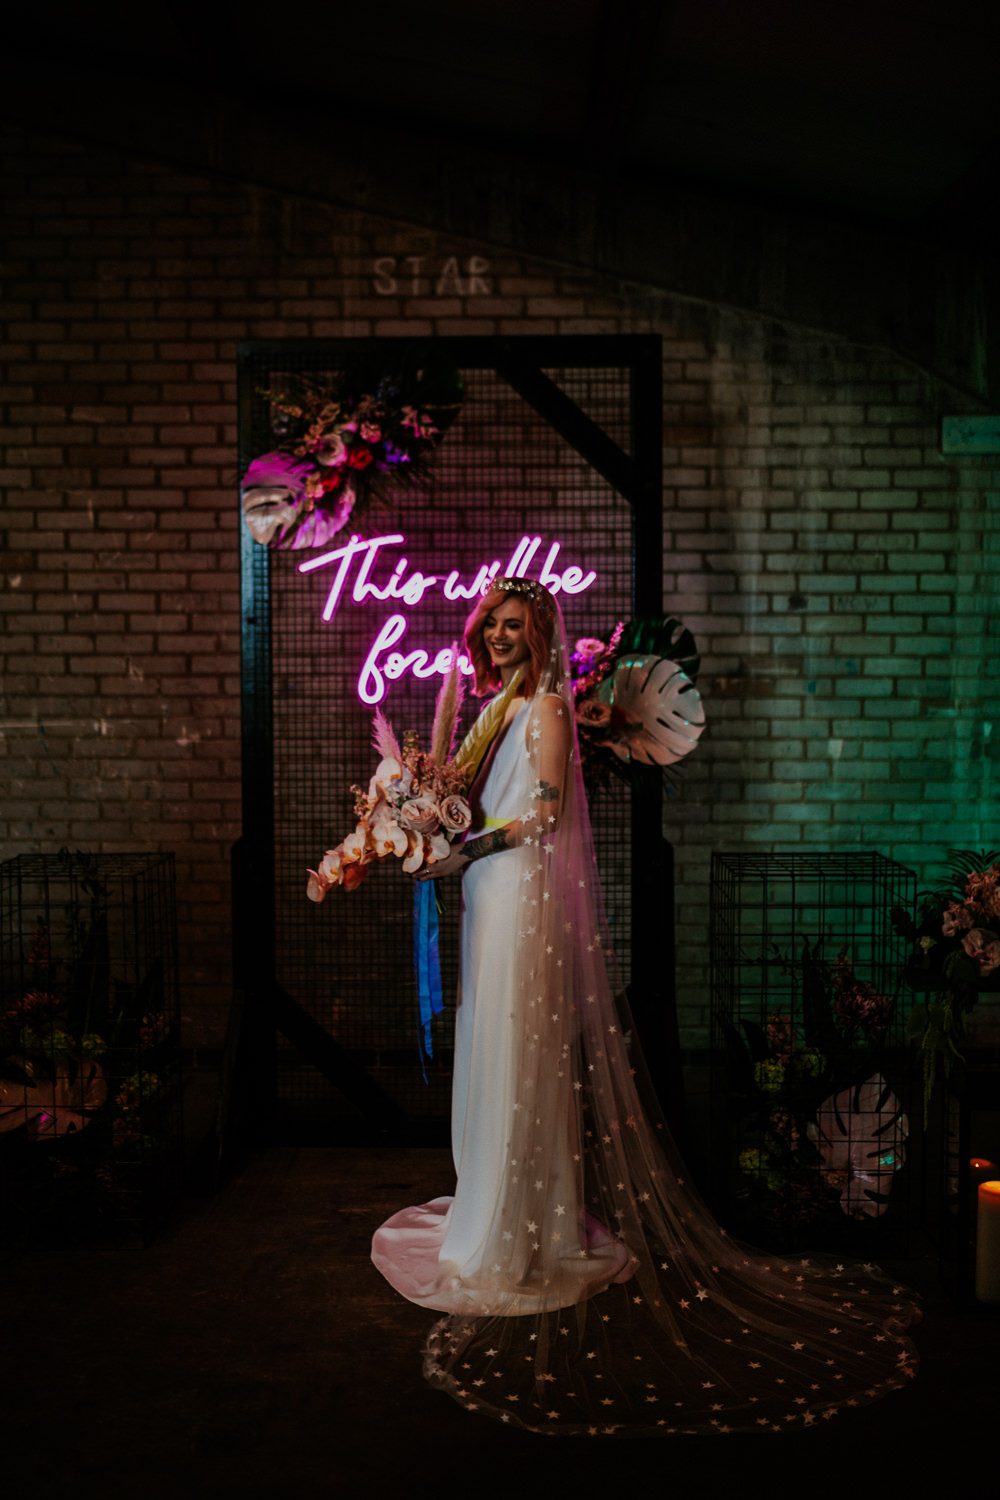 Neon Sign Wedding Ideas State Of Love and Trust Photography Backdrop Arch Flowers Dress Gown Bride Bridal Straps Train Star Celestial Veil